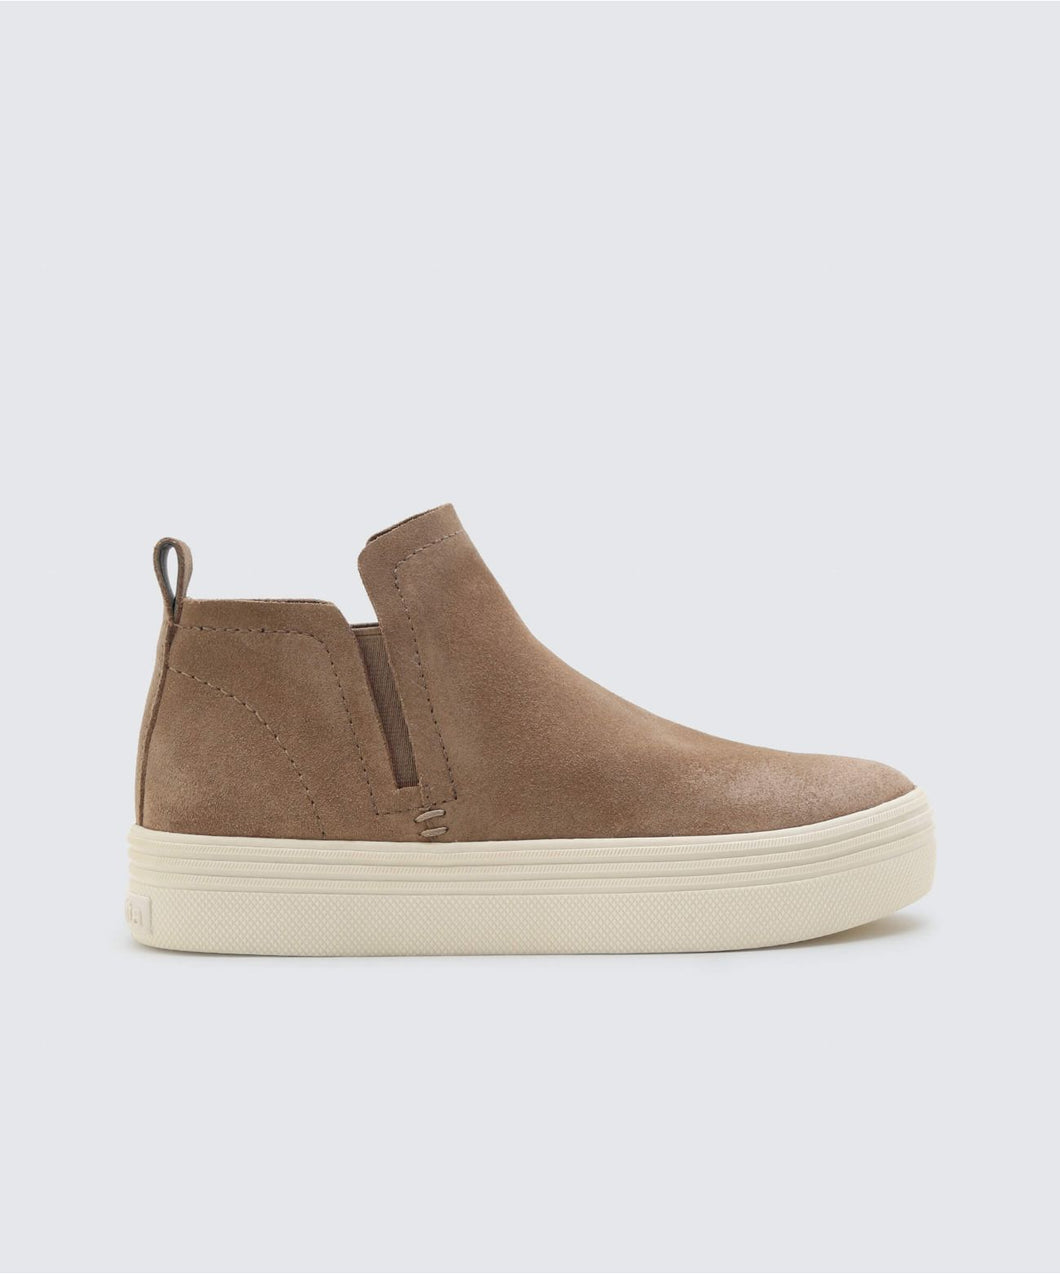 TATE SNEAKERS IN TAUPE -   Dolce Vita